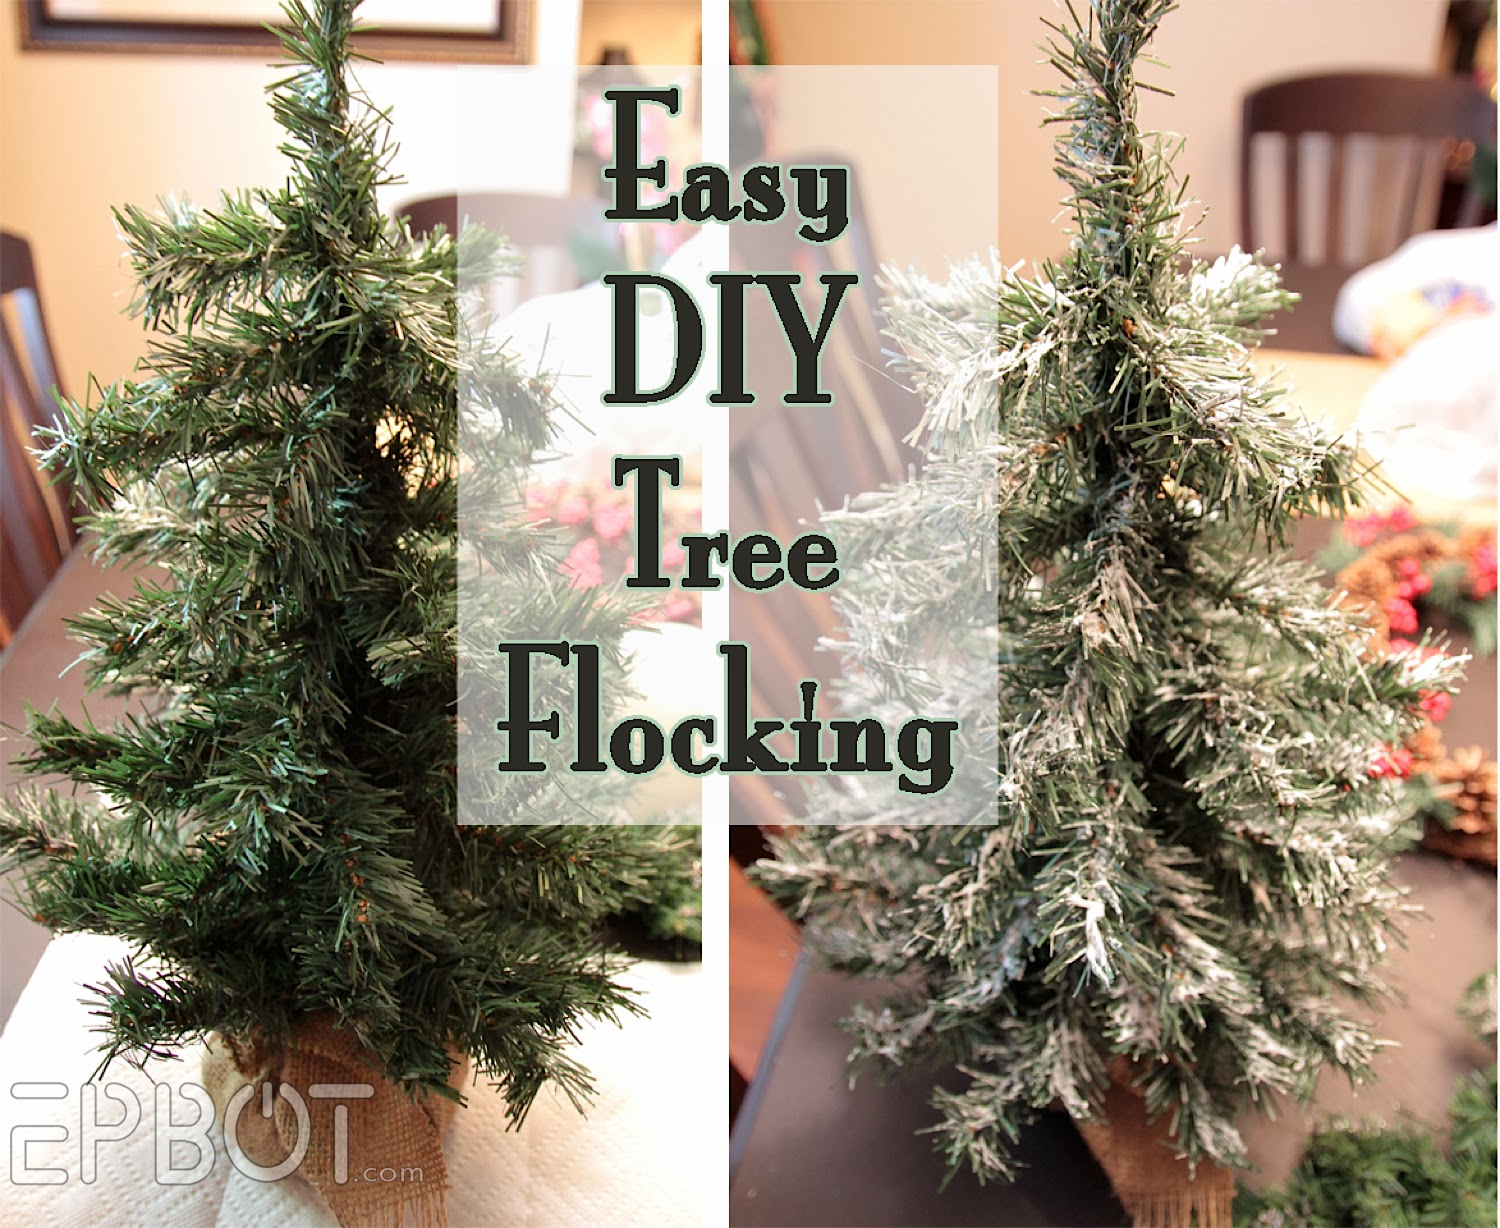 Flocking Artificial Christmas Tree